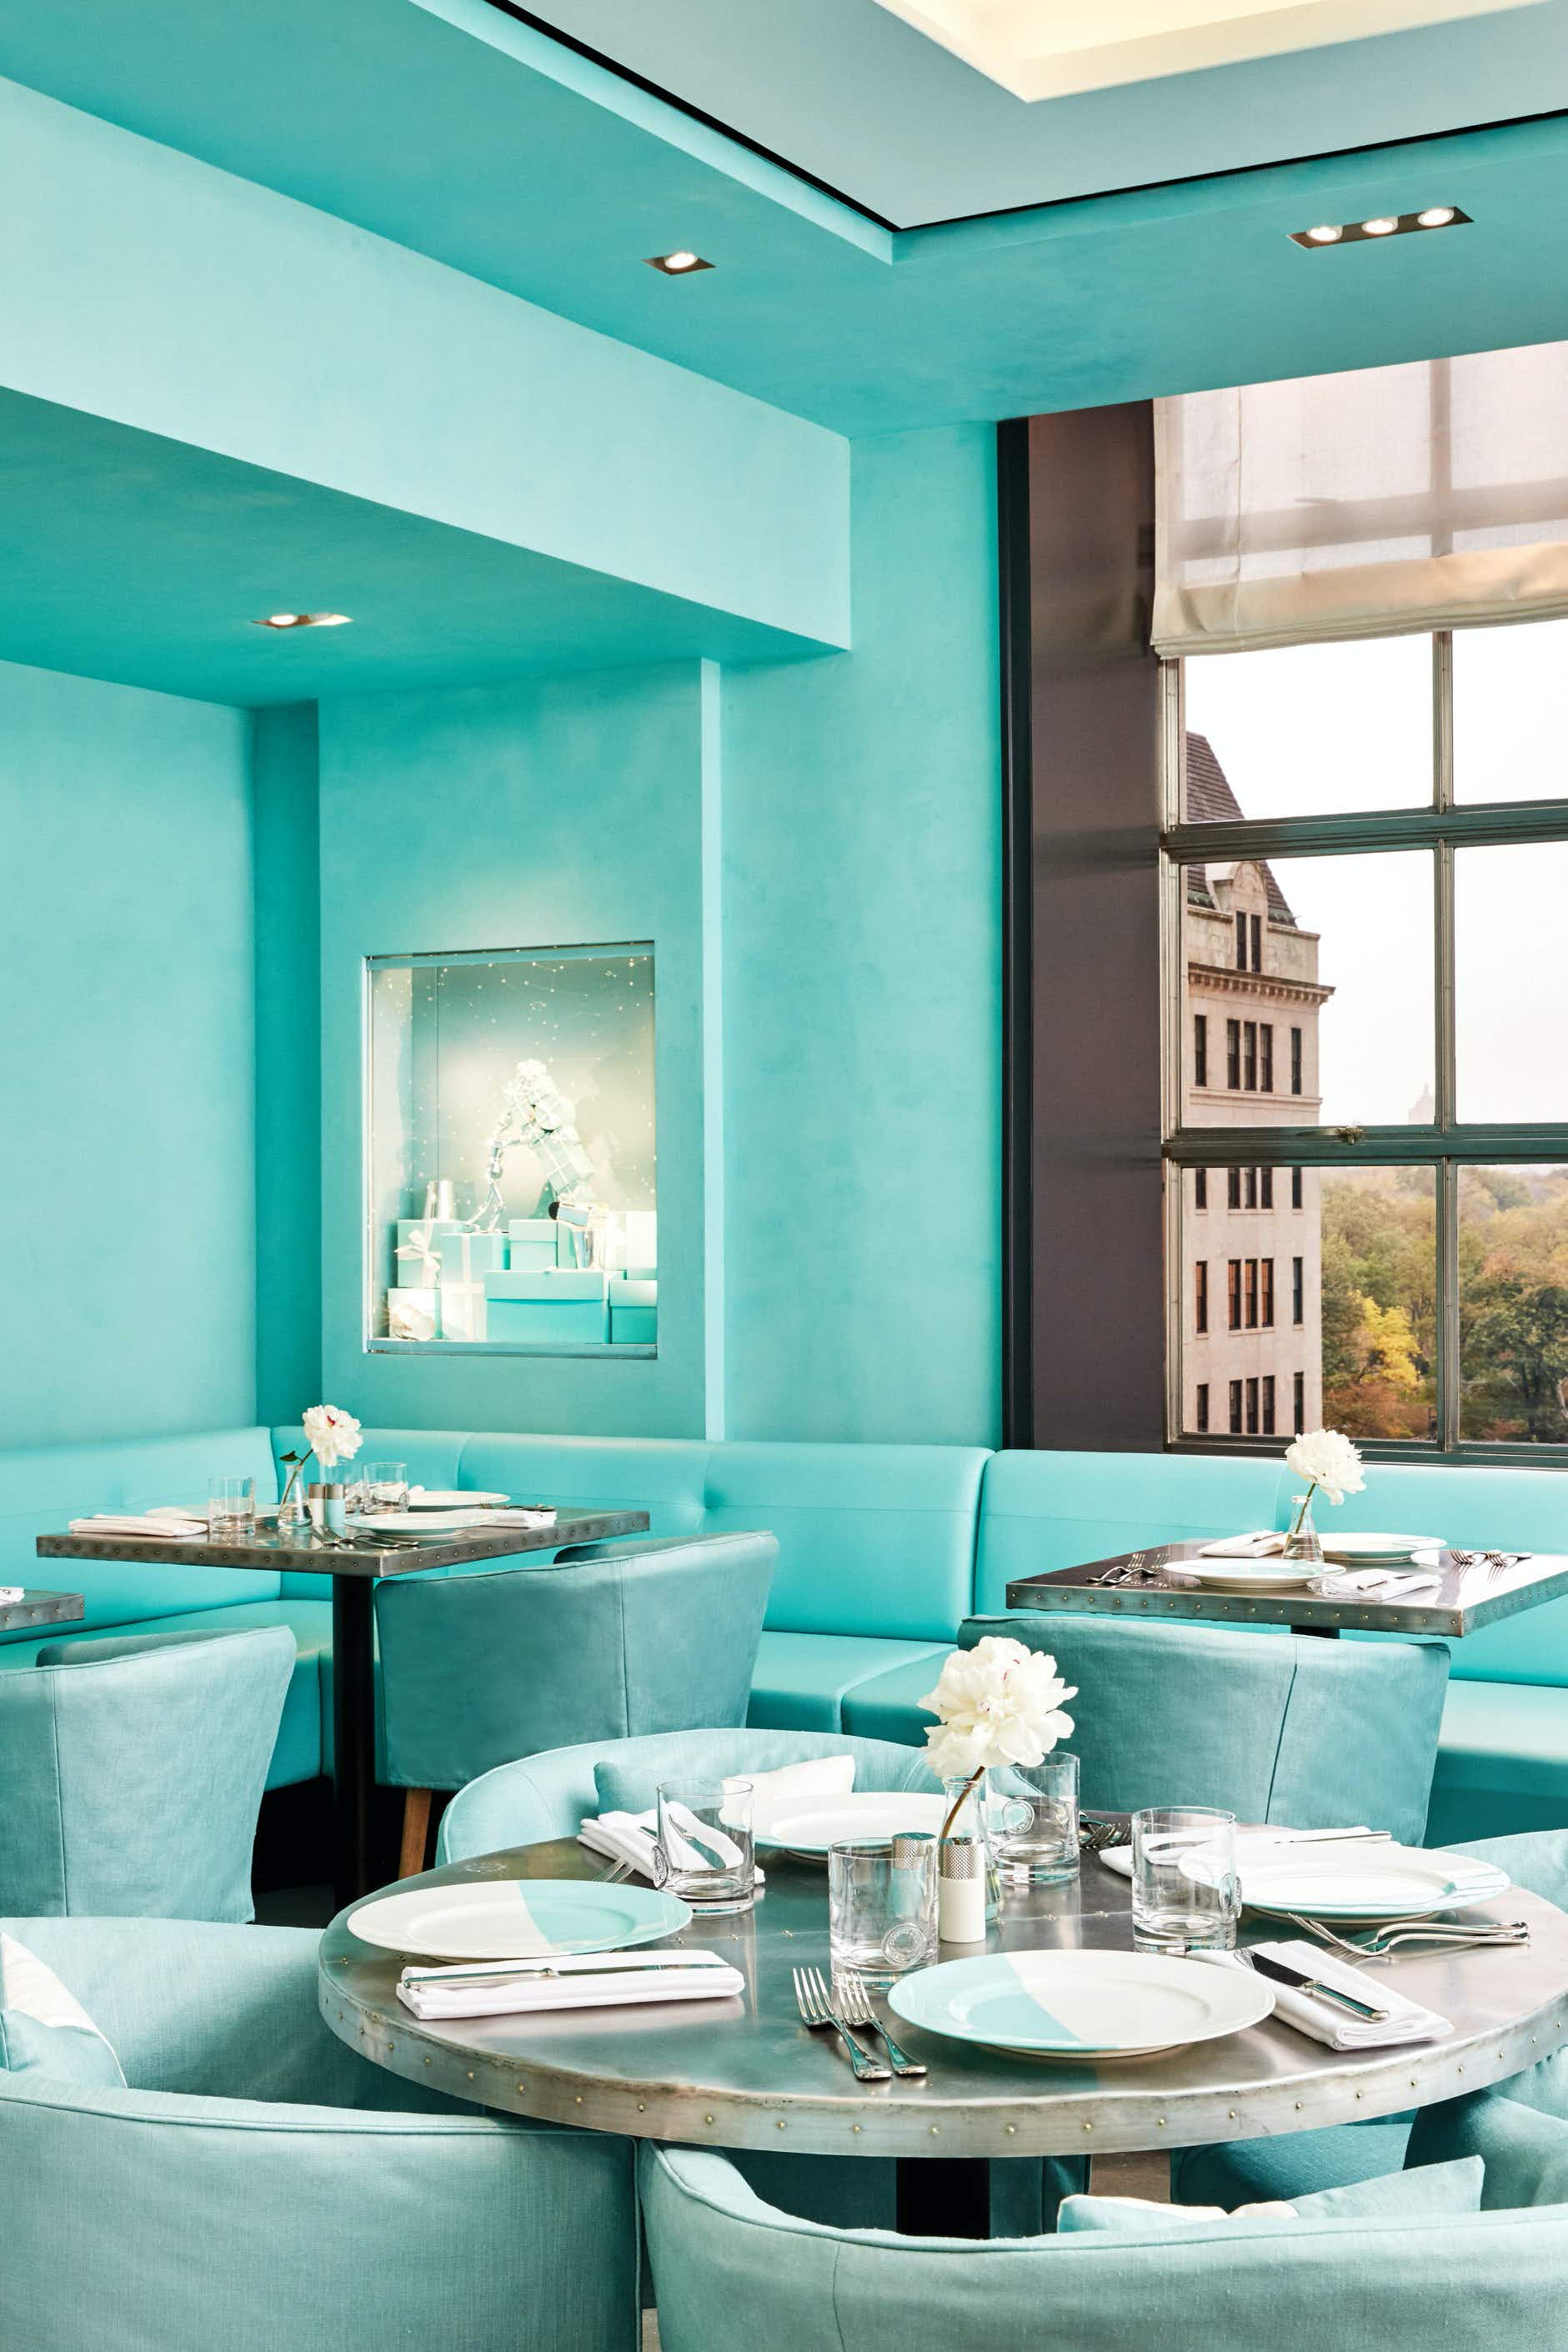 Finally you can have Breakfast at Tiffany's at the company's NYC cafe